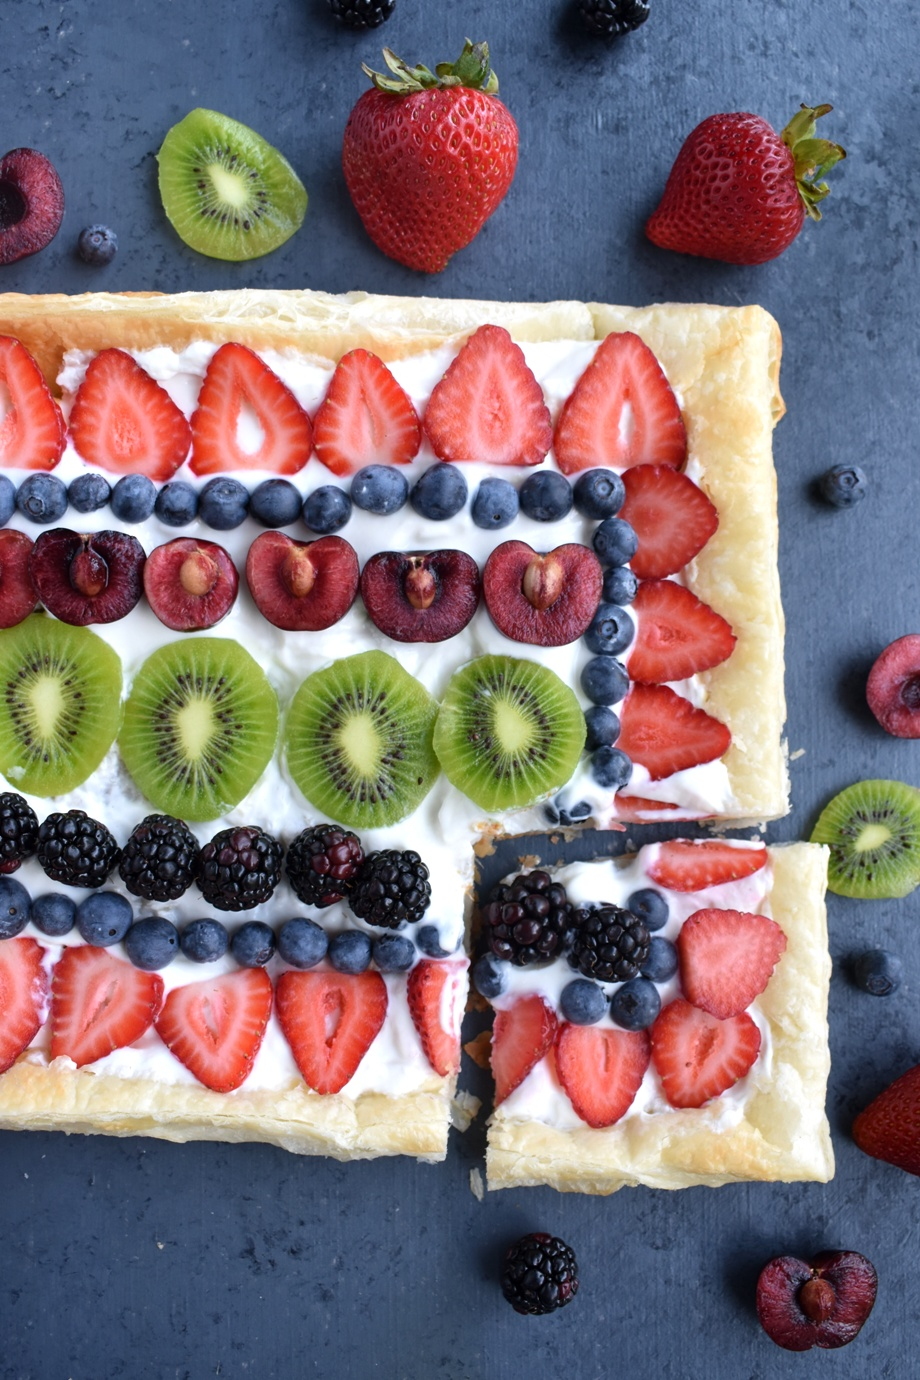 Greek Yogurt Fruit Pizza features a flaky puff pastry crust, vanilla Greek yogurt filling, fresh berries and kiwi for a healthier dessert option that is perfect for any party!